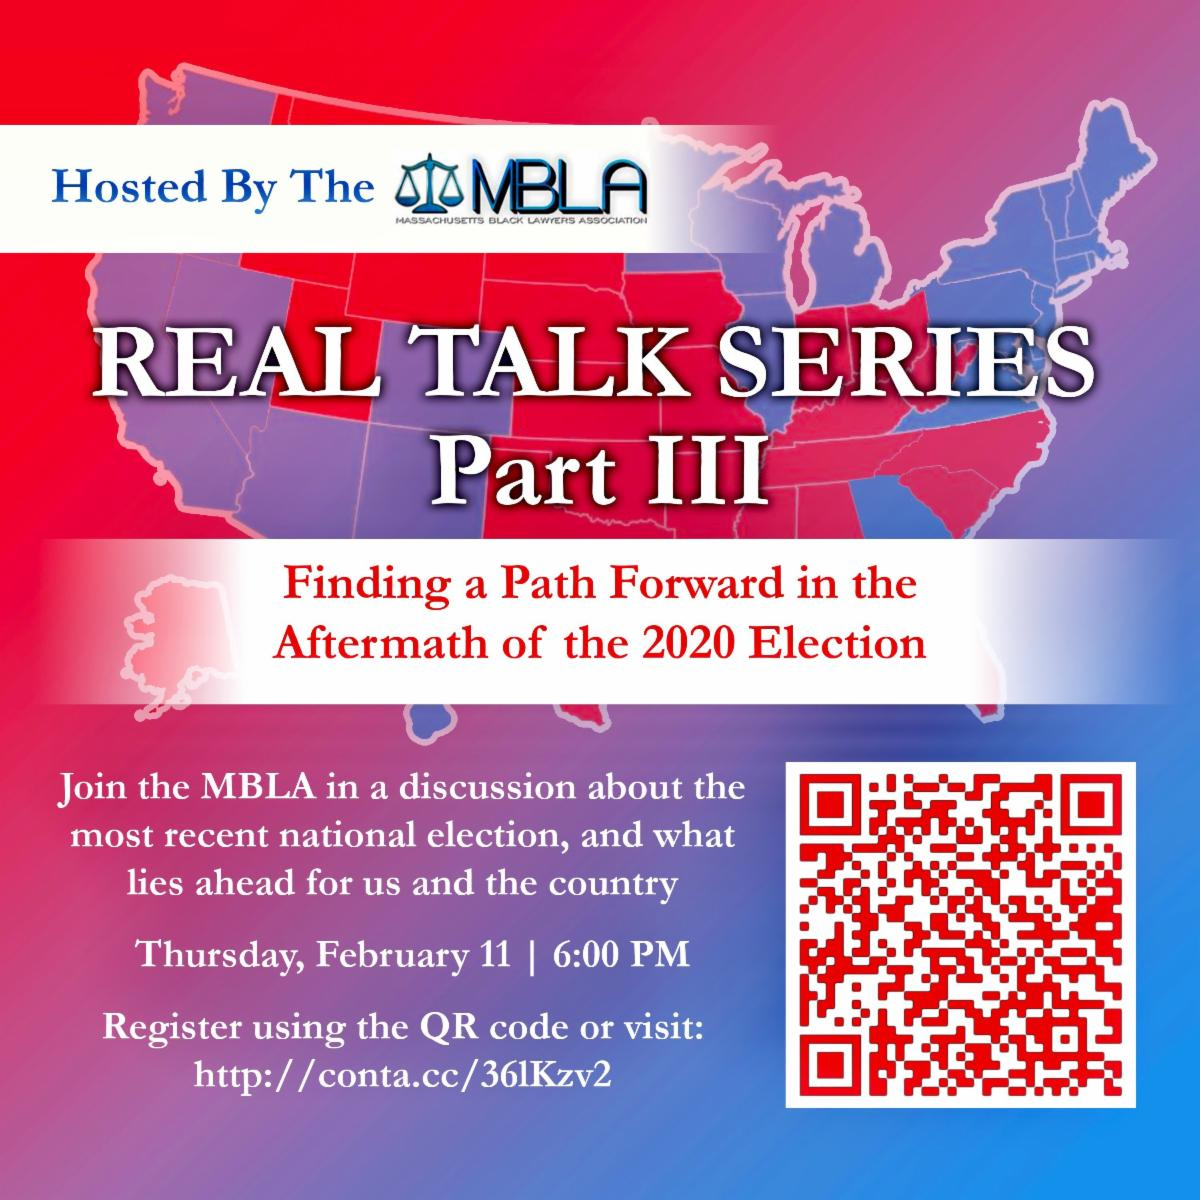 Hosted by the MBLA, Real Talk Series Part III: Finding a Path Forward in the Aftermath of the 2020 Election -- Join the MBLA in a discussion about the most recent national election, and what lies ahead for us and the country. THURSDAY FEBRUARY 11 6PM.